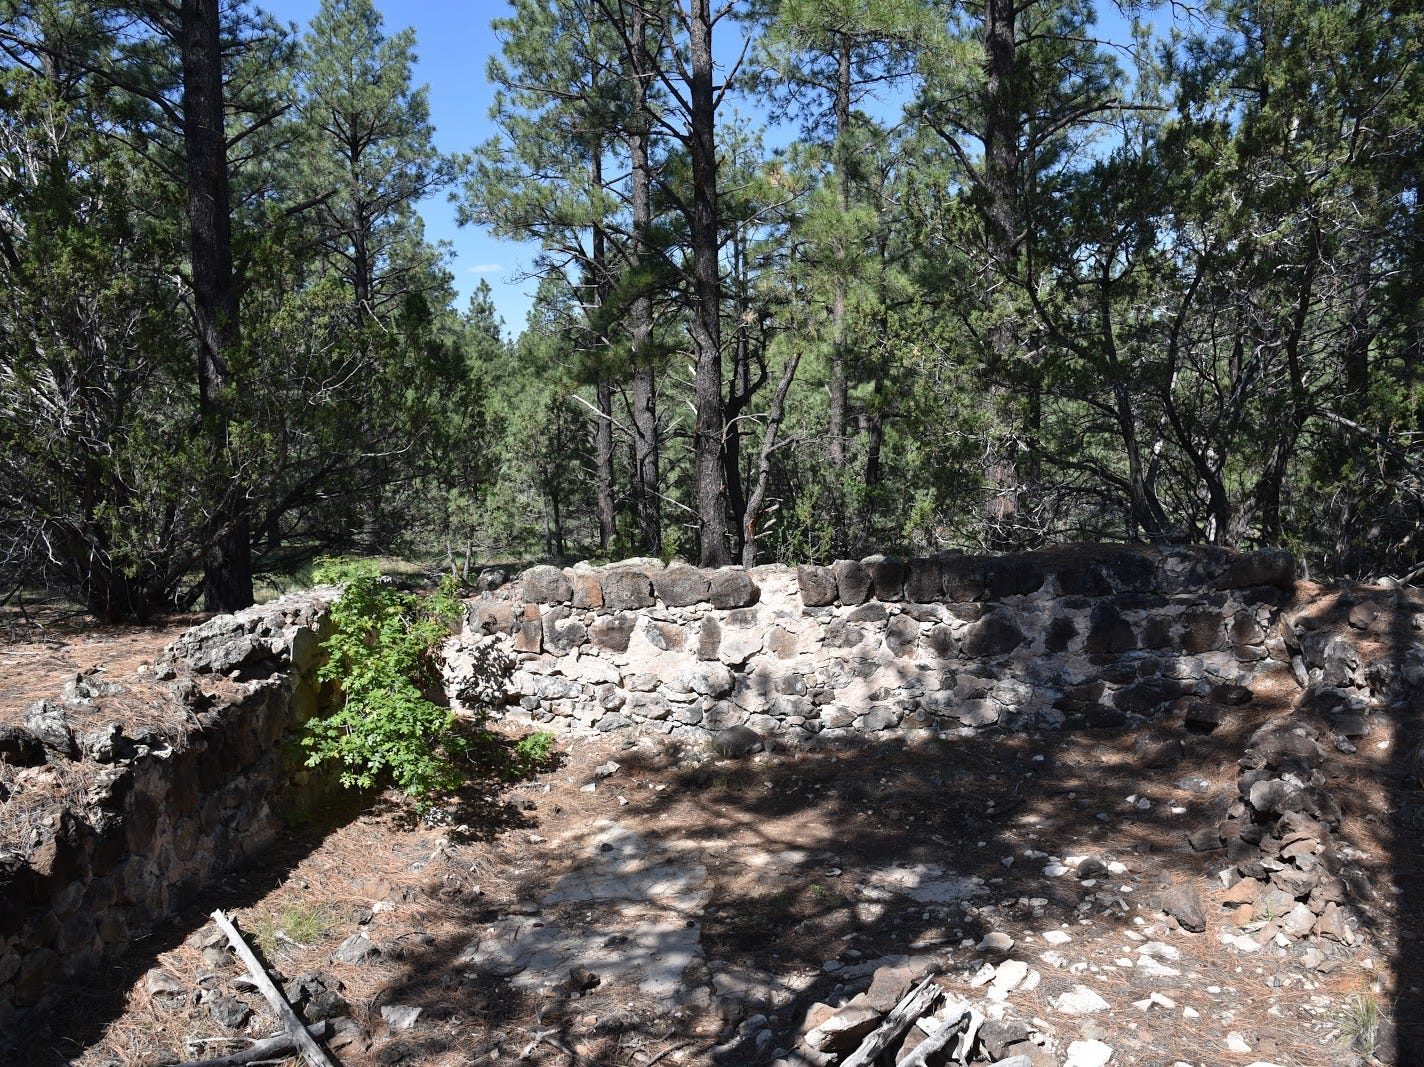 Ruins of a pioneer homestead.